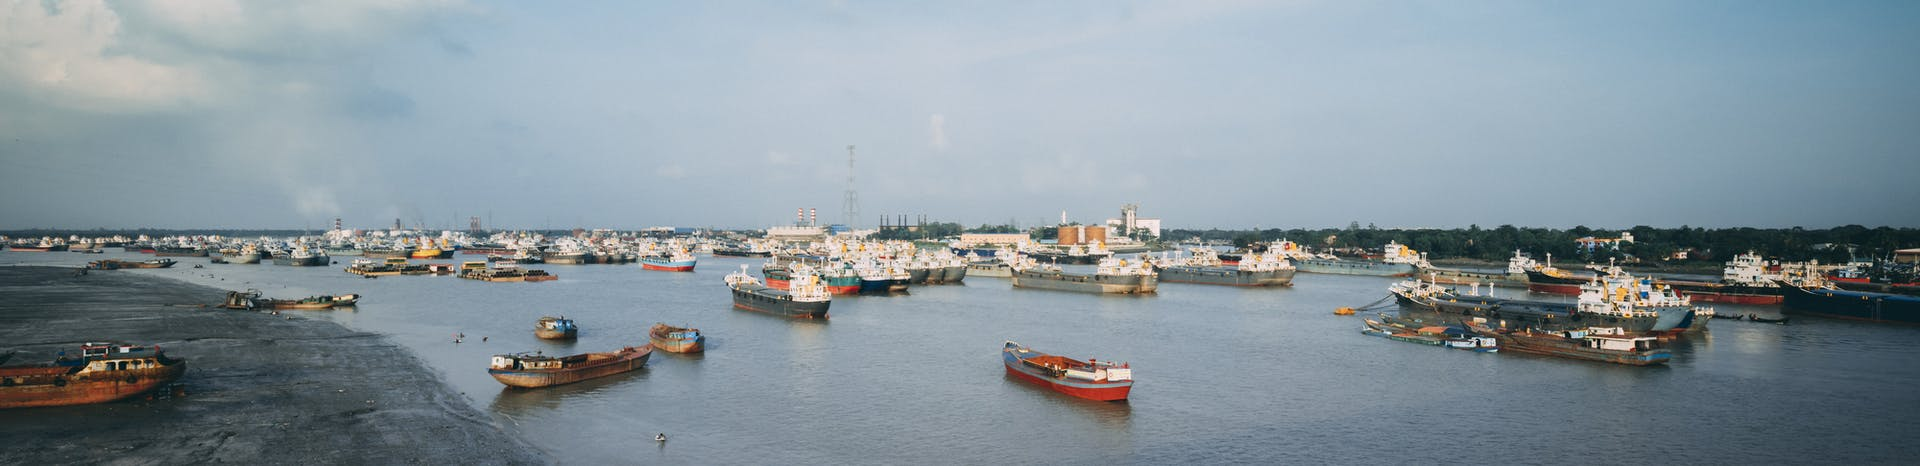 Picture of Chittagong